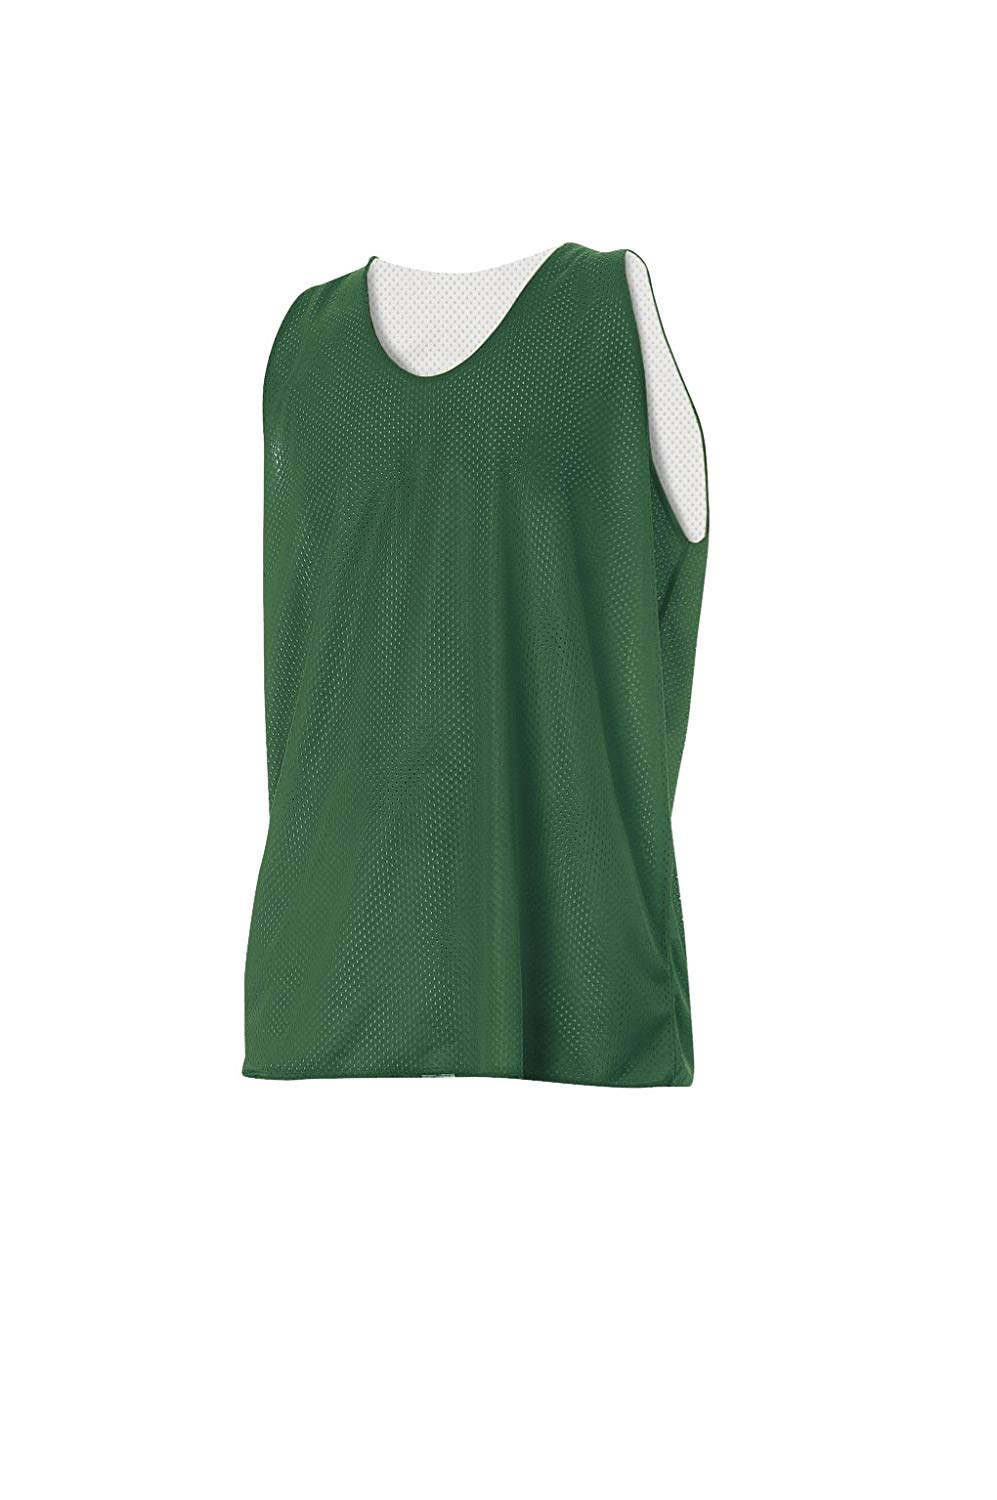 42a10898495 Youth Reversible Athletic Mesh Team Scrimmage Practice Jerseys for  Basketball